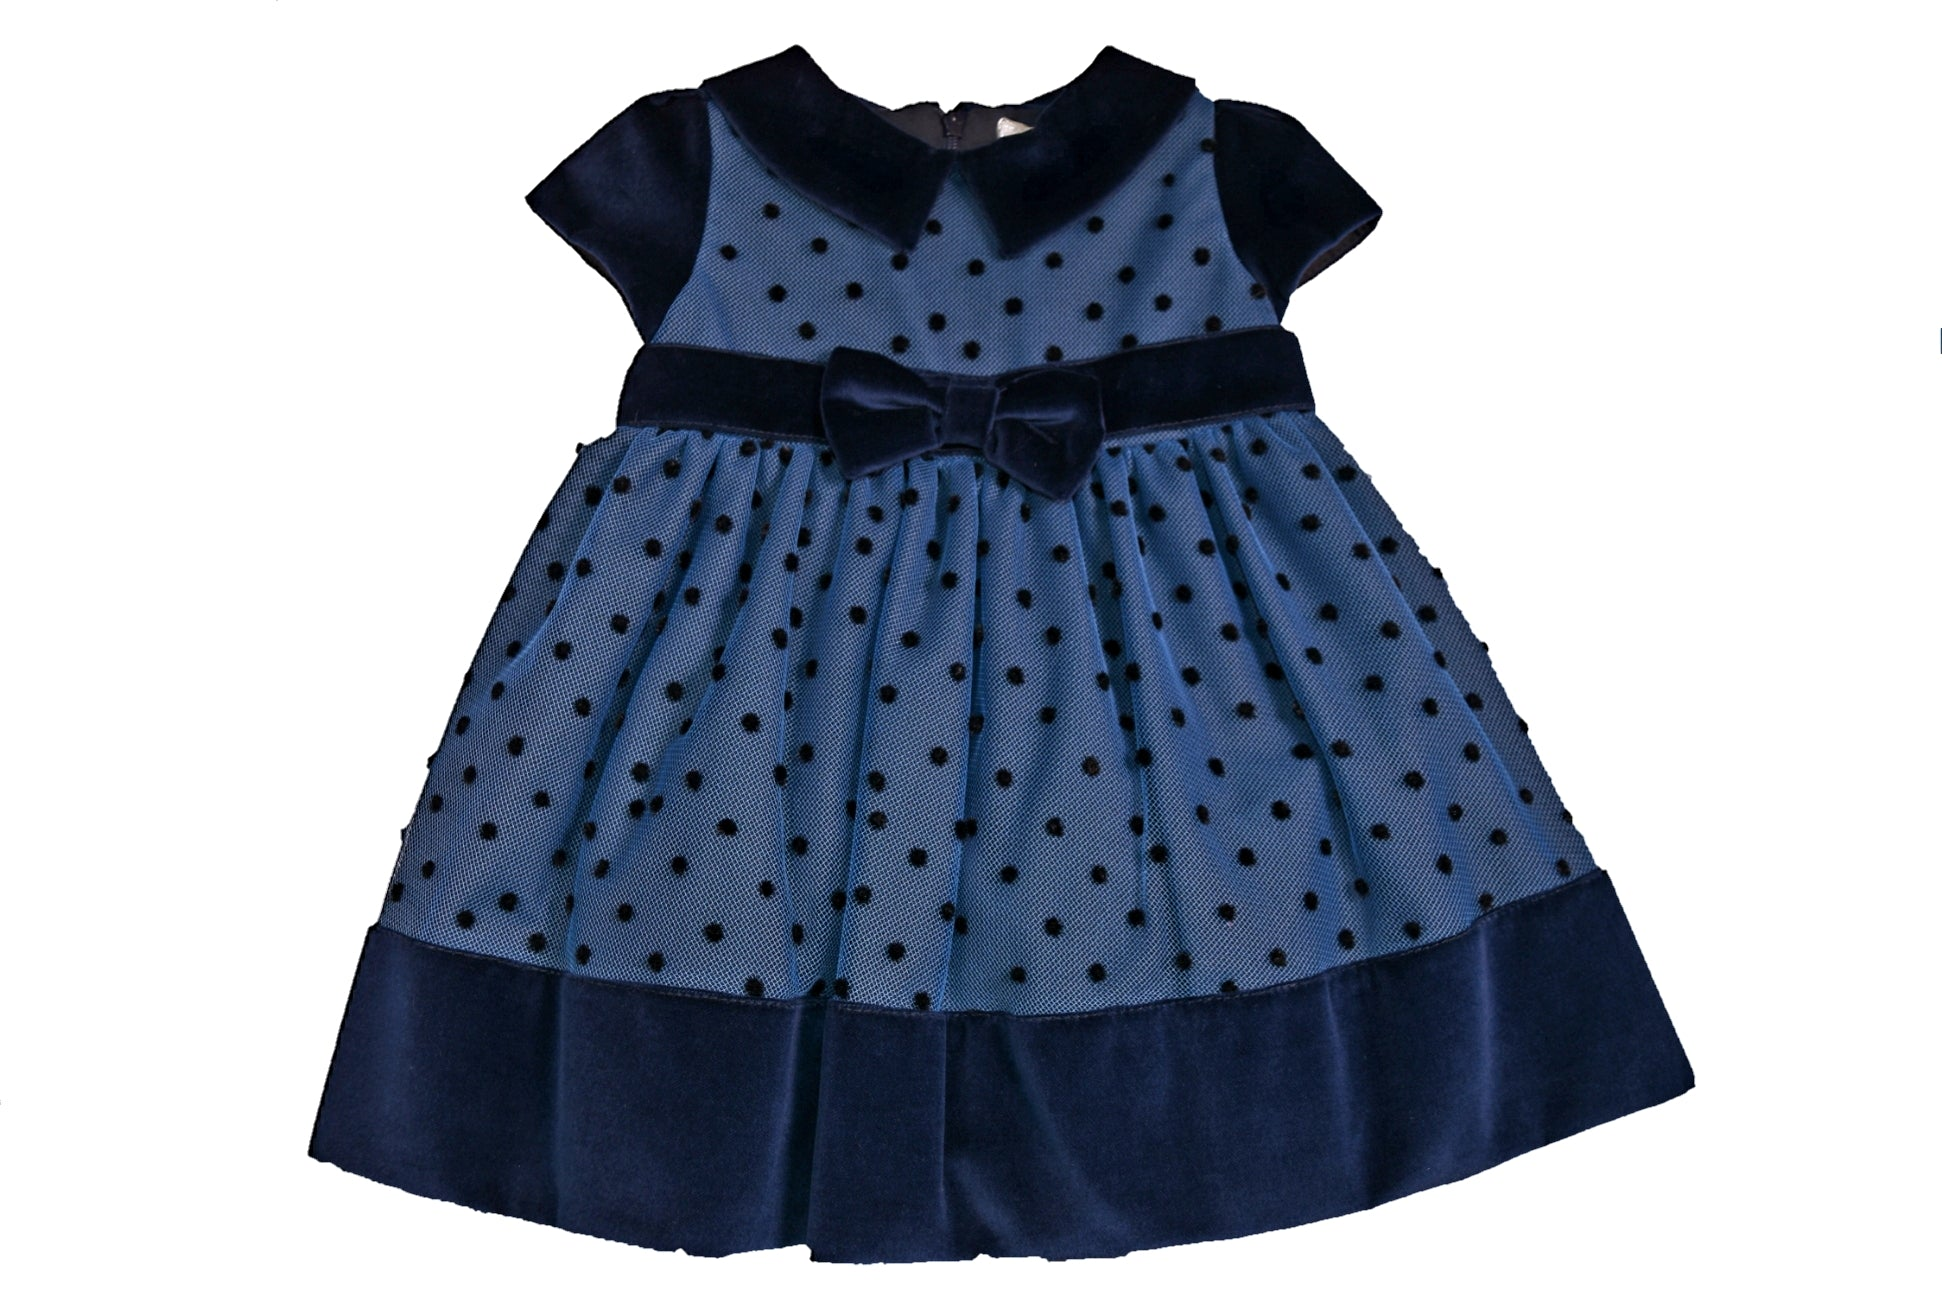 Bimbalo Blue Polka Dot Dress with Navy Velvet Trim